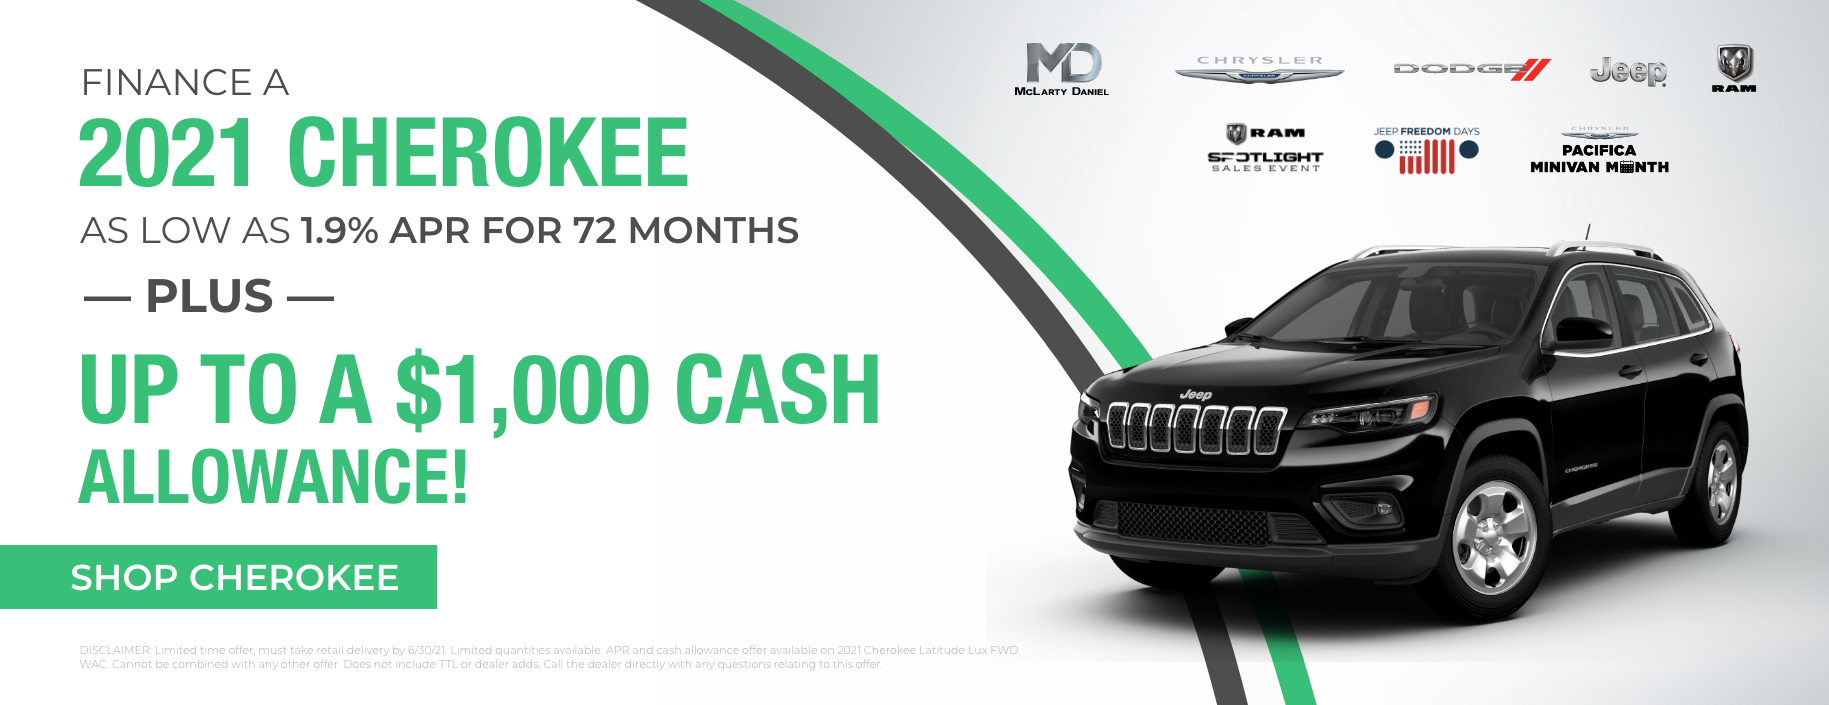 Finance a 2021 Cherokee as low as 1.9% APR for 72 months PLUS up to a $1,000 cash allowance!